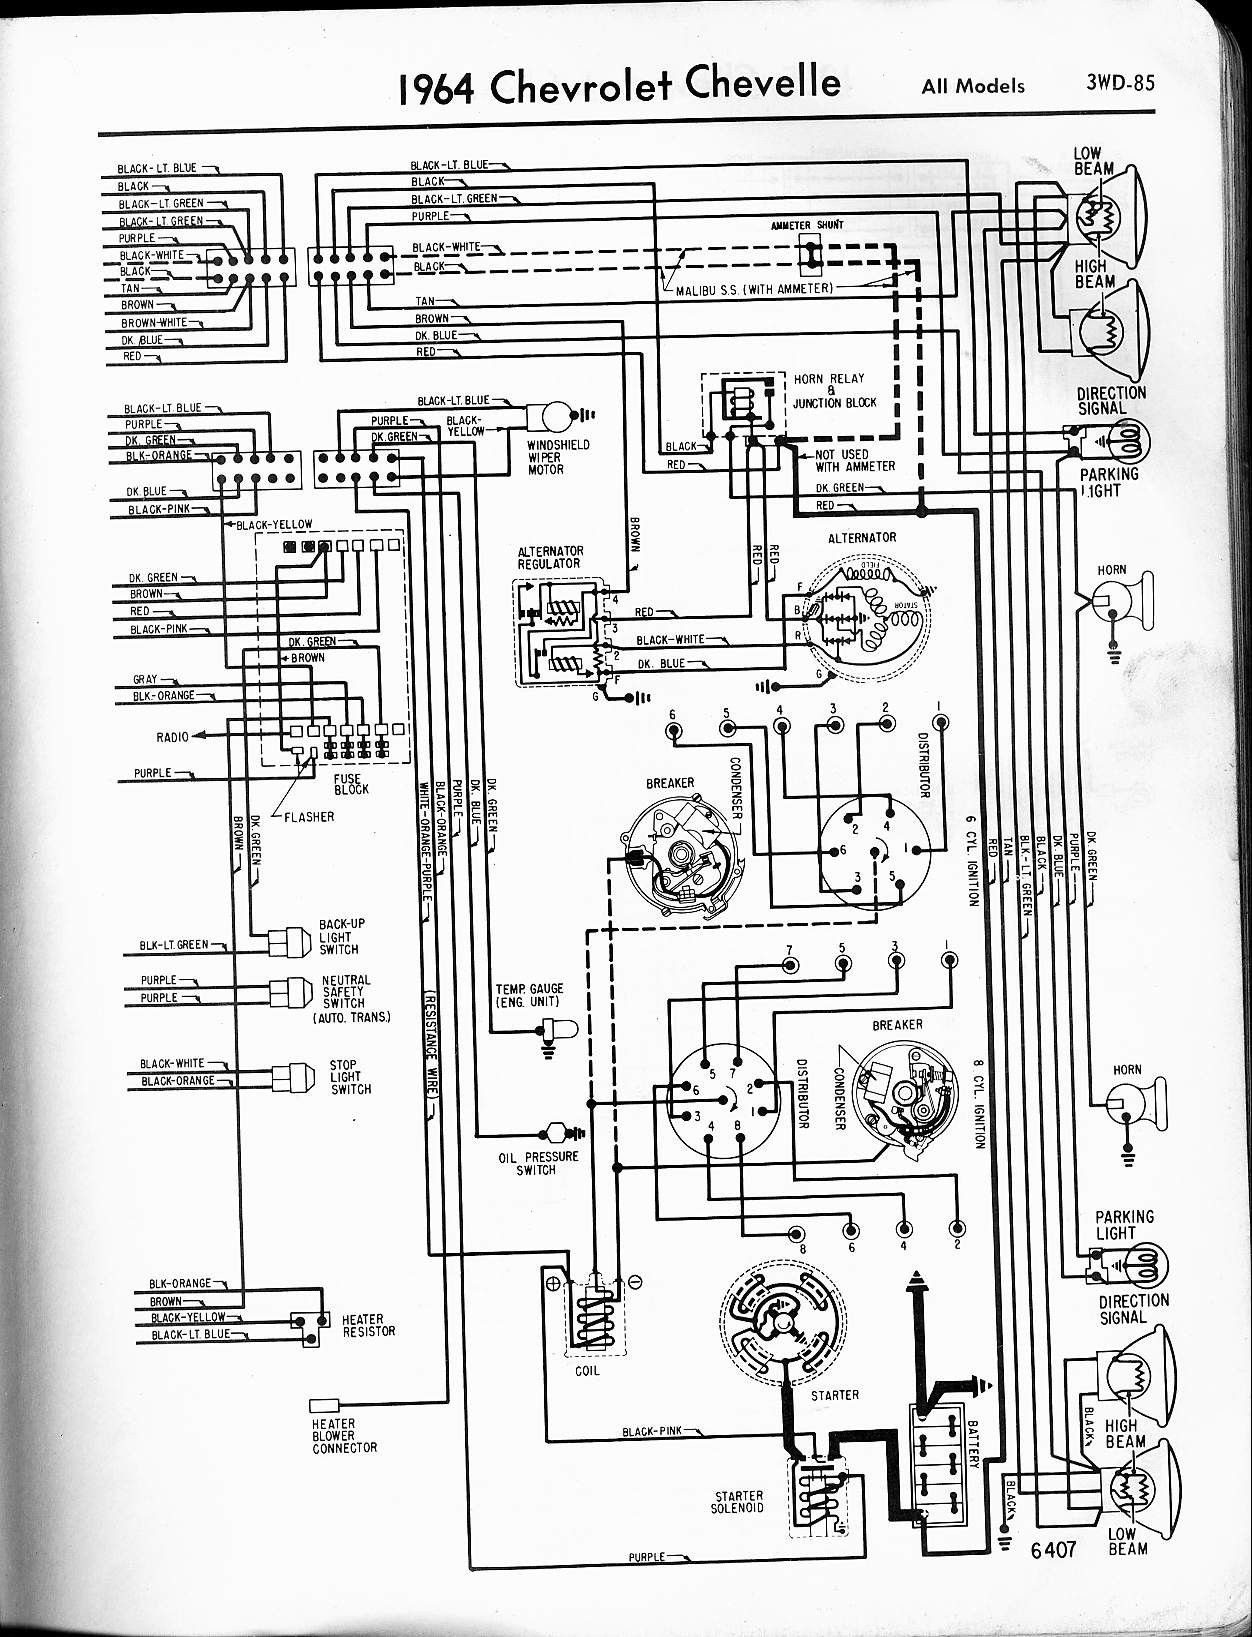 1968 chevrolet chevelle wiring diagram schematics wiring diagrams u2022 rh mrskinnytie com  68 chevelle ignition switch wiring diagram